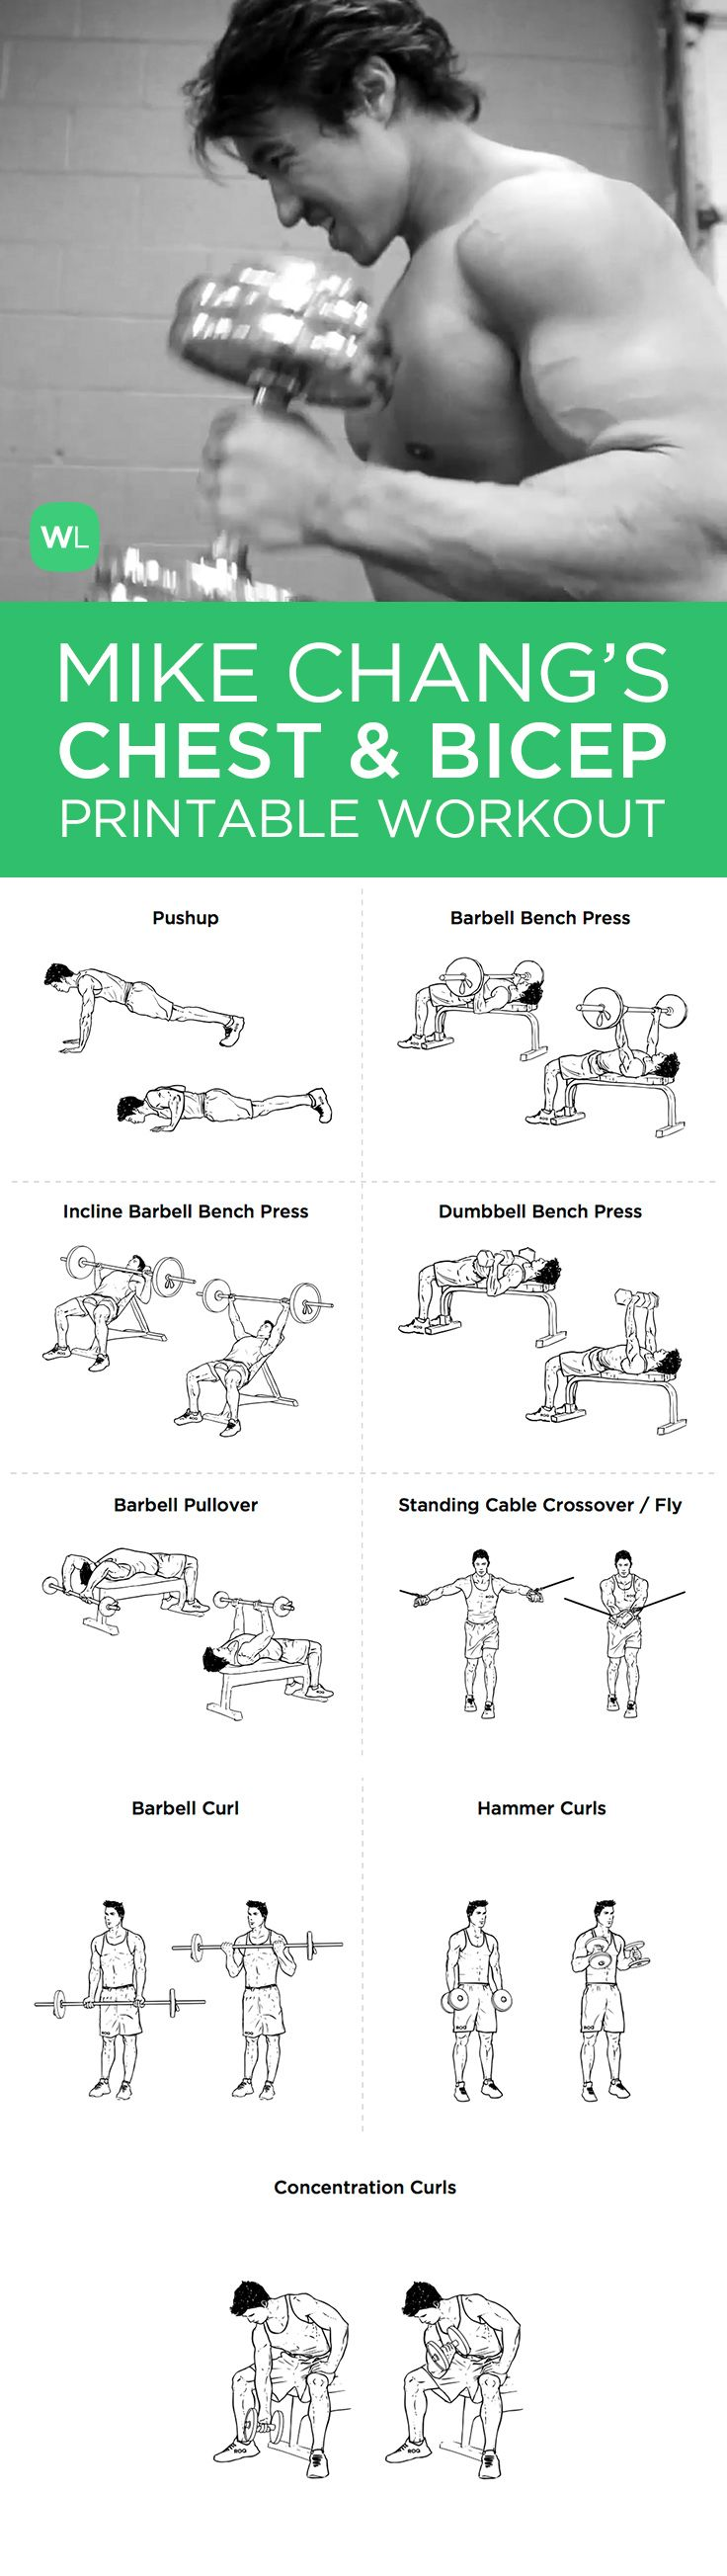 Visit http://workoutlabs.com/workout-plans/mike-changs-actual ...